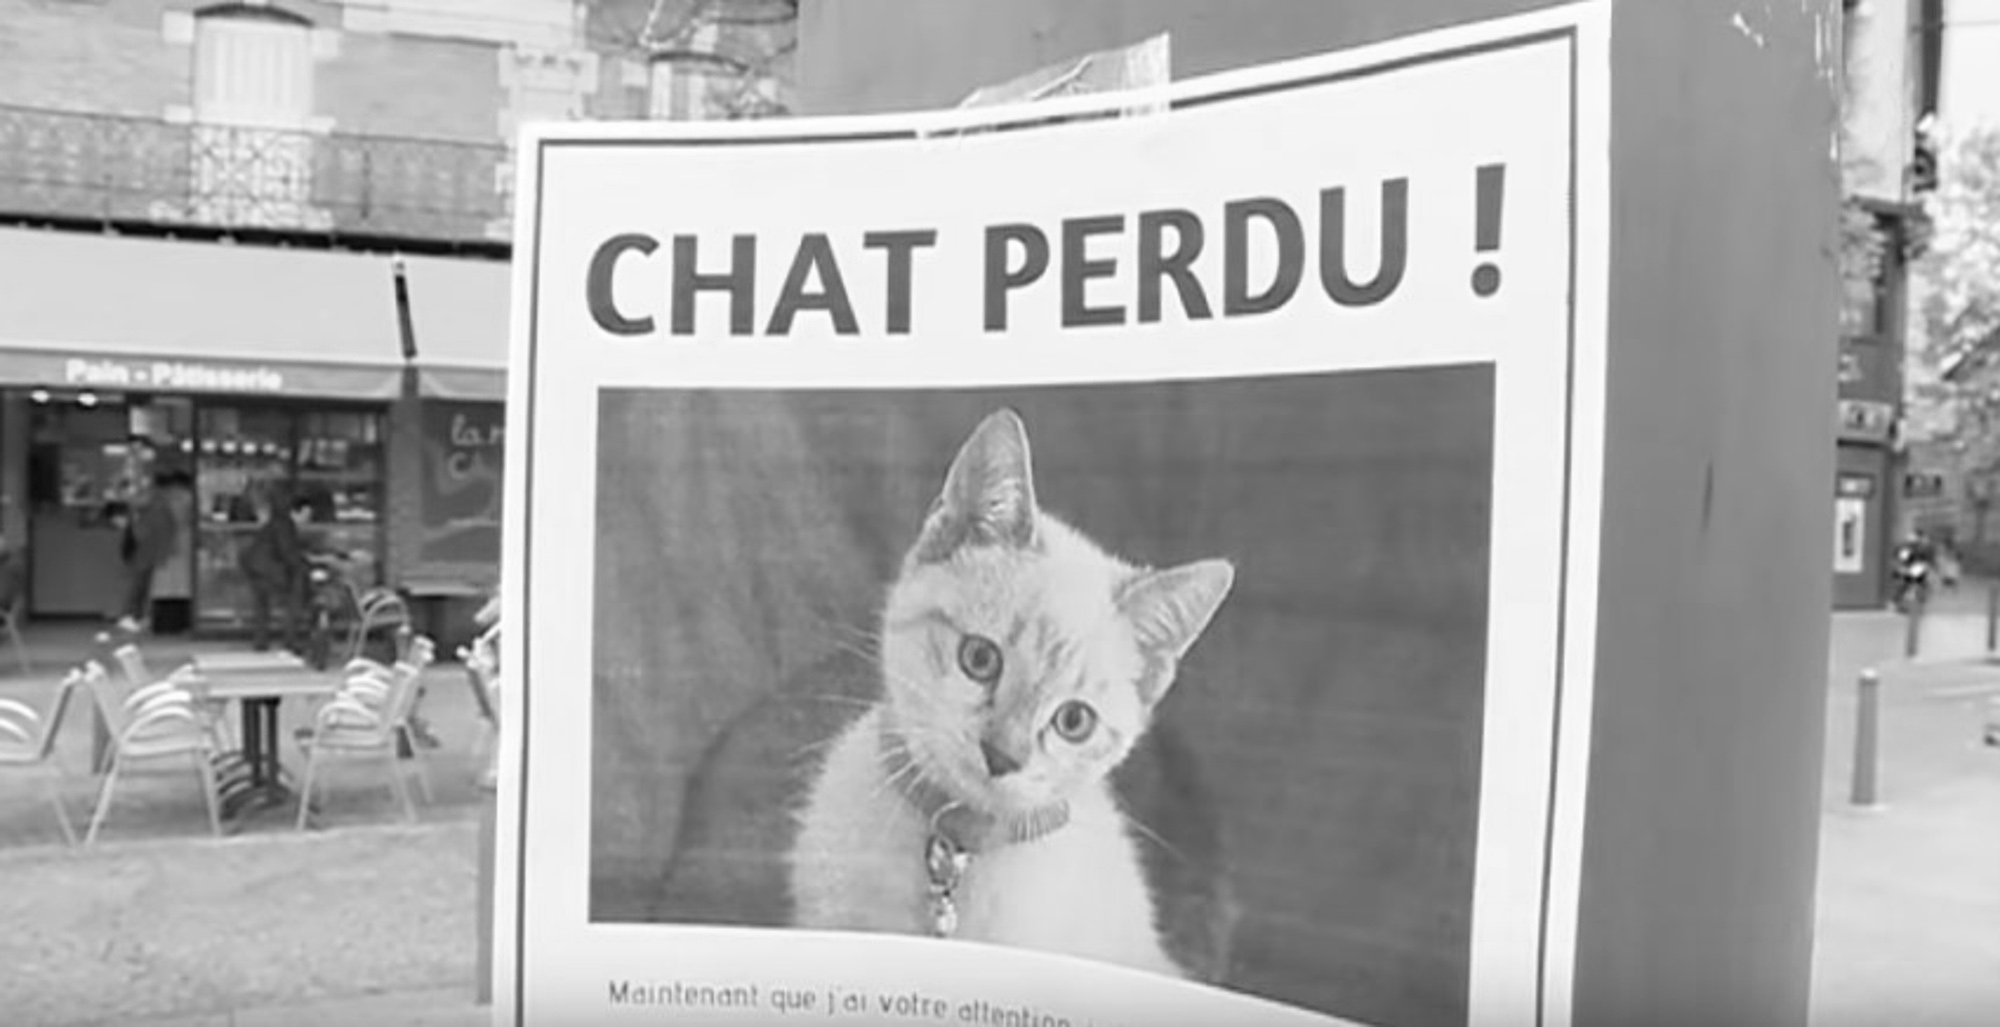 Man Uses Cute Missing Kitten Poster To Find Job